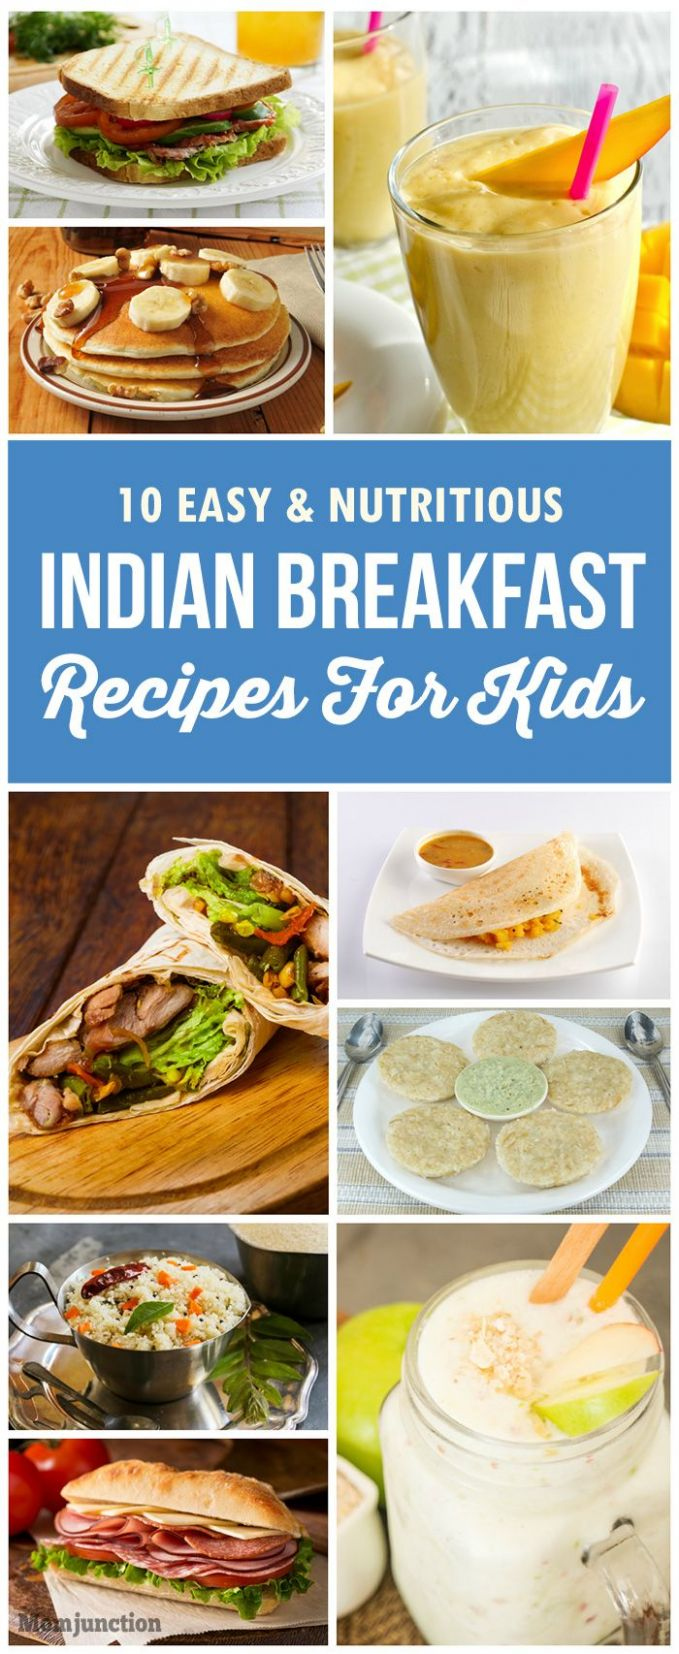 9 Tasty And Healthy Indian Breakfast Recipes For Kids | Indian ..